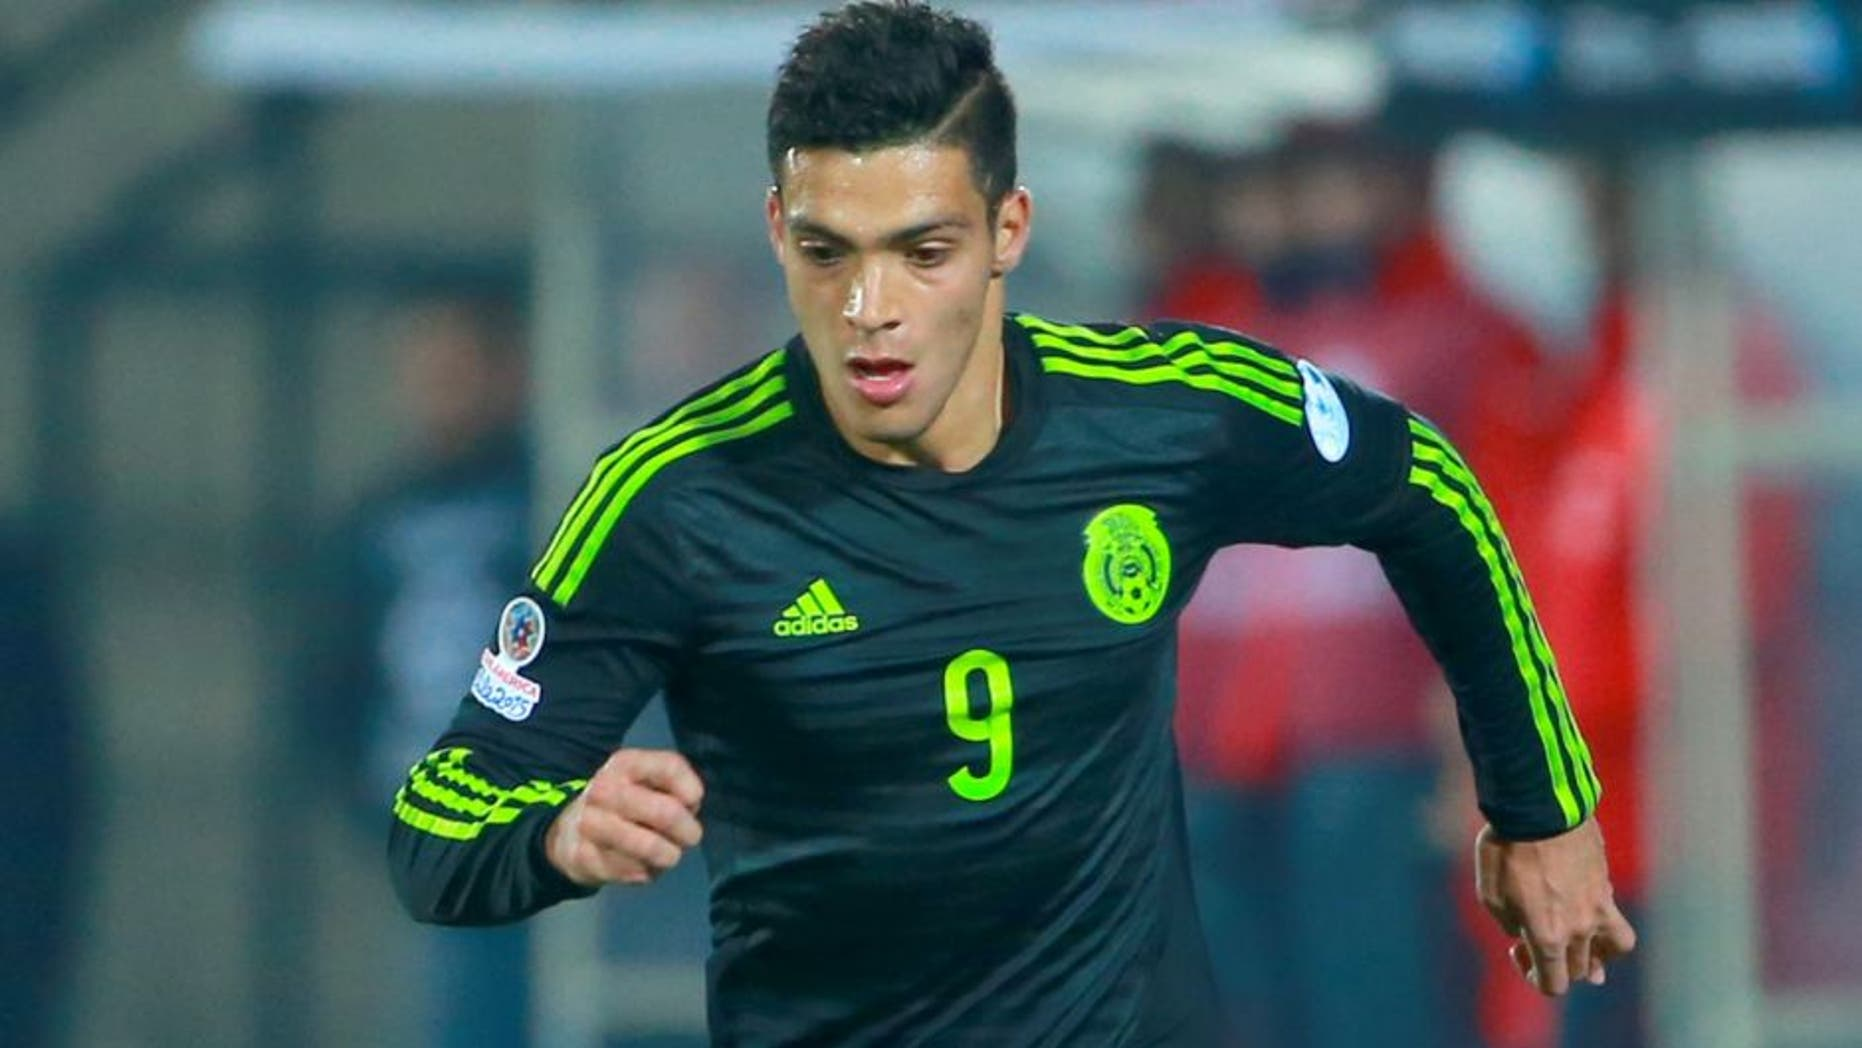 SANTIAGO, CHILE - JUNE 15: Raul Jimenez of Mexico drives the ball during the 2015 Copa America Chile Group A match between Chile and Mexico at Nacional Stadium on June 15, 2015 in Santiago, Chile. (Photo by Miguel Tovar/LatinContent/Getty Images)